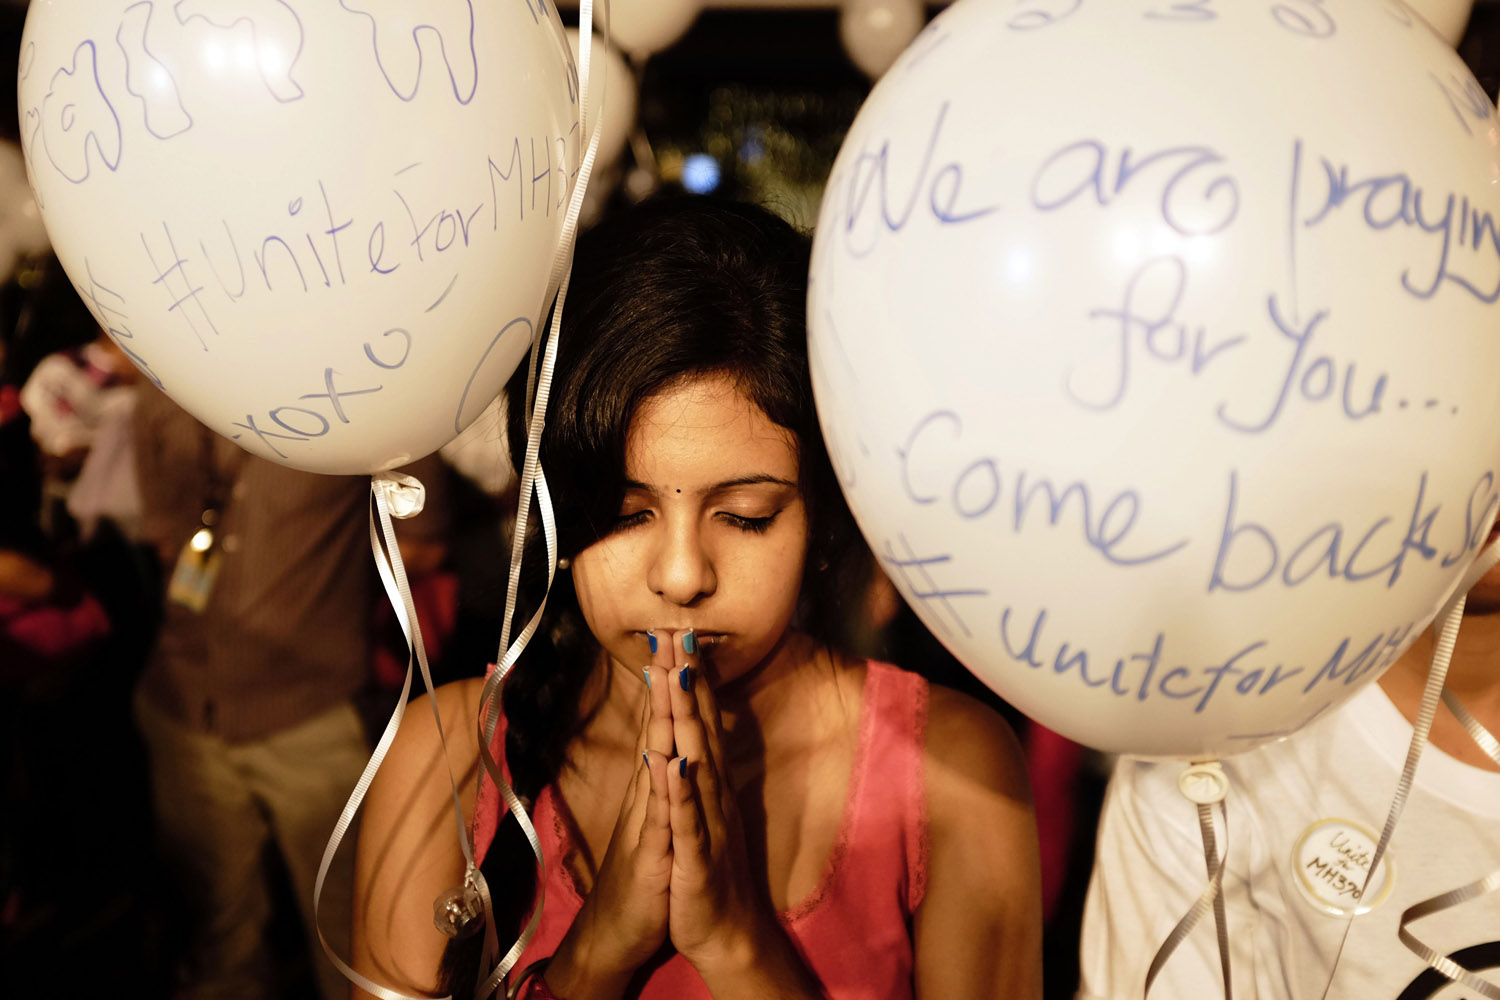 Mar. 18, 2014 - A girl prays during an event for missing Malaysia Airlines Flight MH370 at a shopping mall in Petaling Jaya,  Malaysia  A coalition of 26 countries, including Thailand, are looking for the flight, which vanished with 239 people aboard.